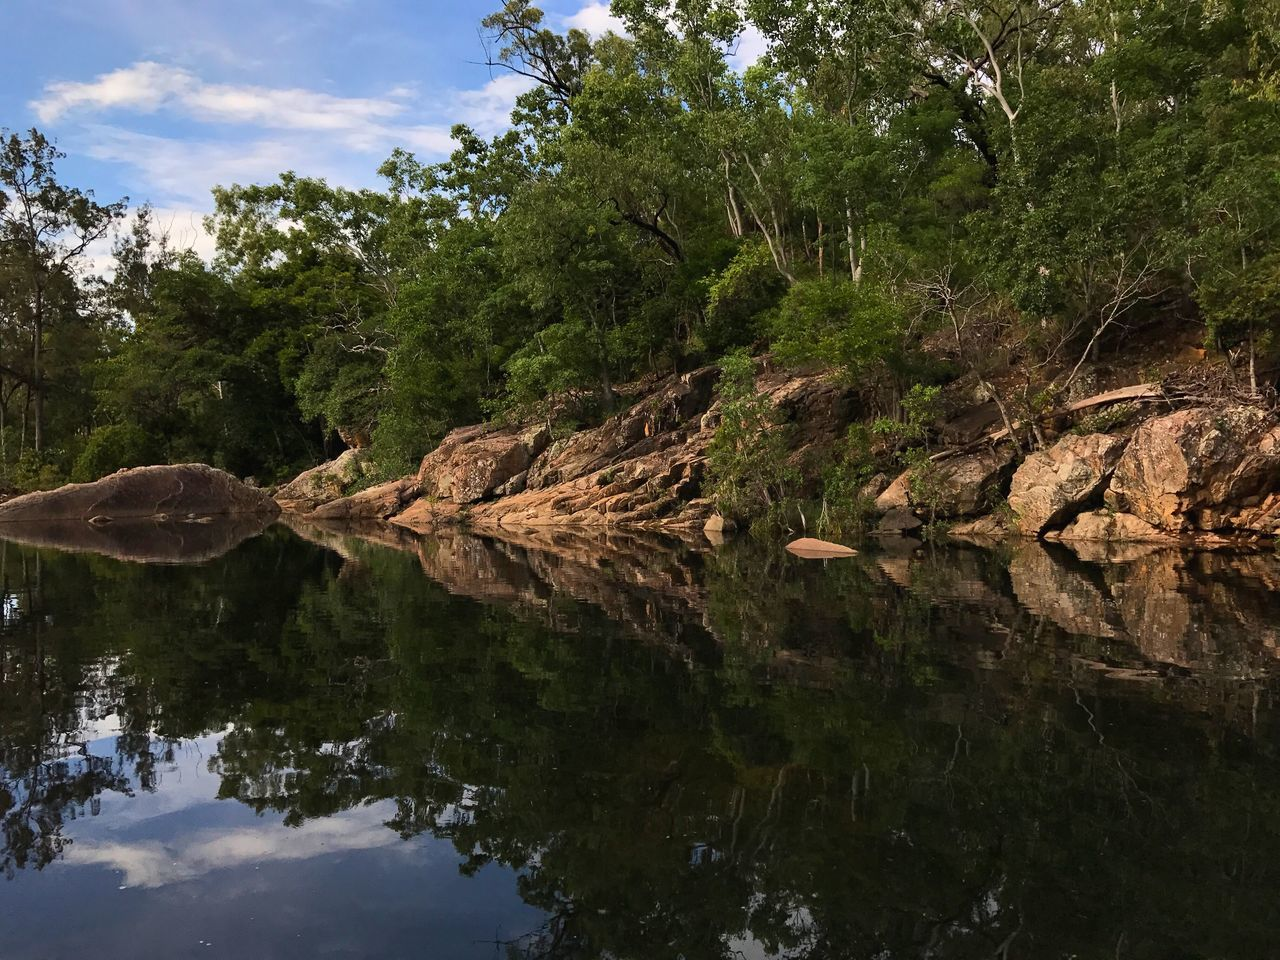 Alligator Creek, Mount Elliot near Townsville, Queensland, Australia. Nature Reflection Tree No People Forest Tranquility Outdoors Water Beauty In Nature Day Woodlands Australia Travel Destinations Tranquil Scene Scenics